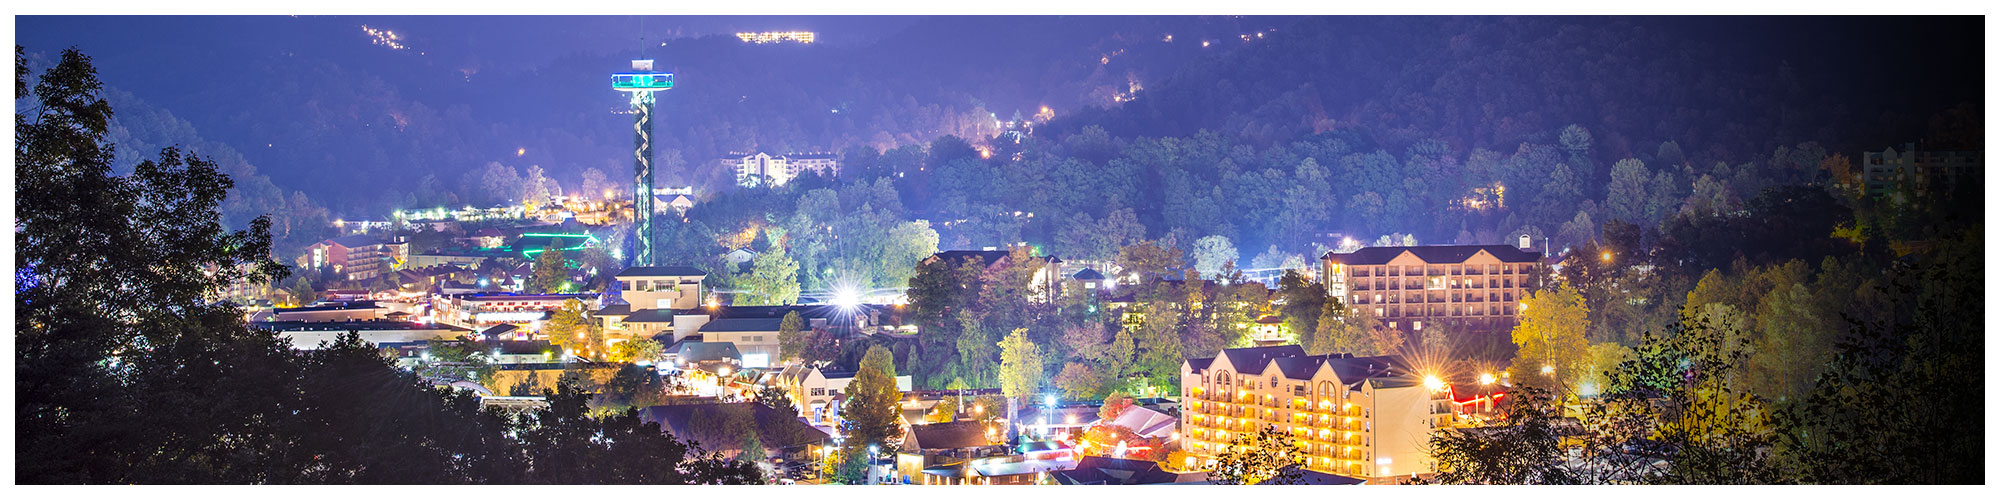 Maps (Header Background) | Gatlinburg Attractions